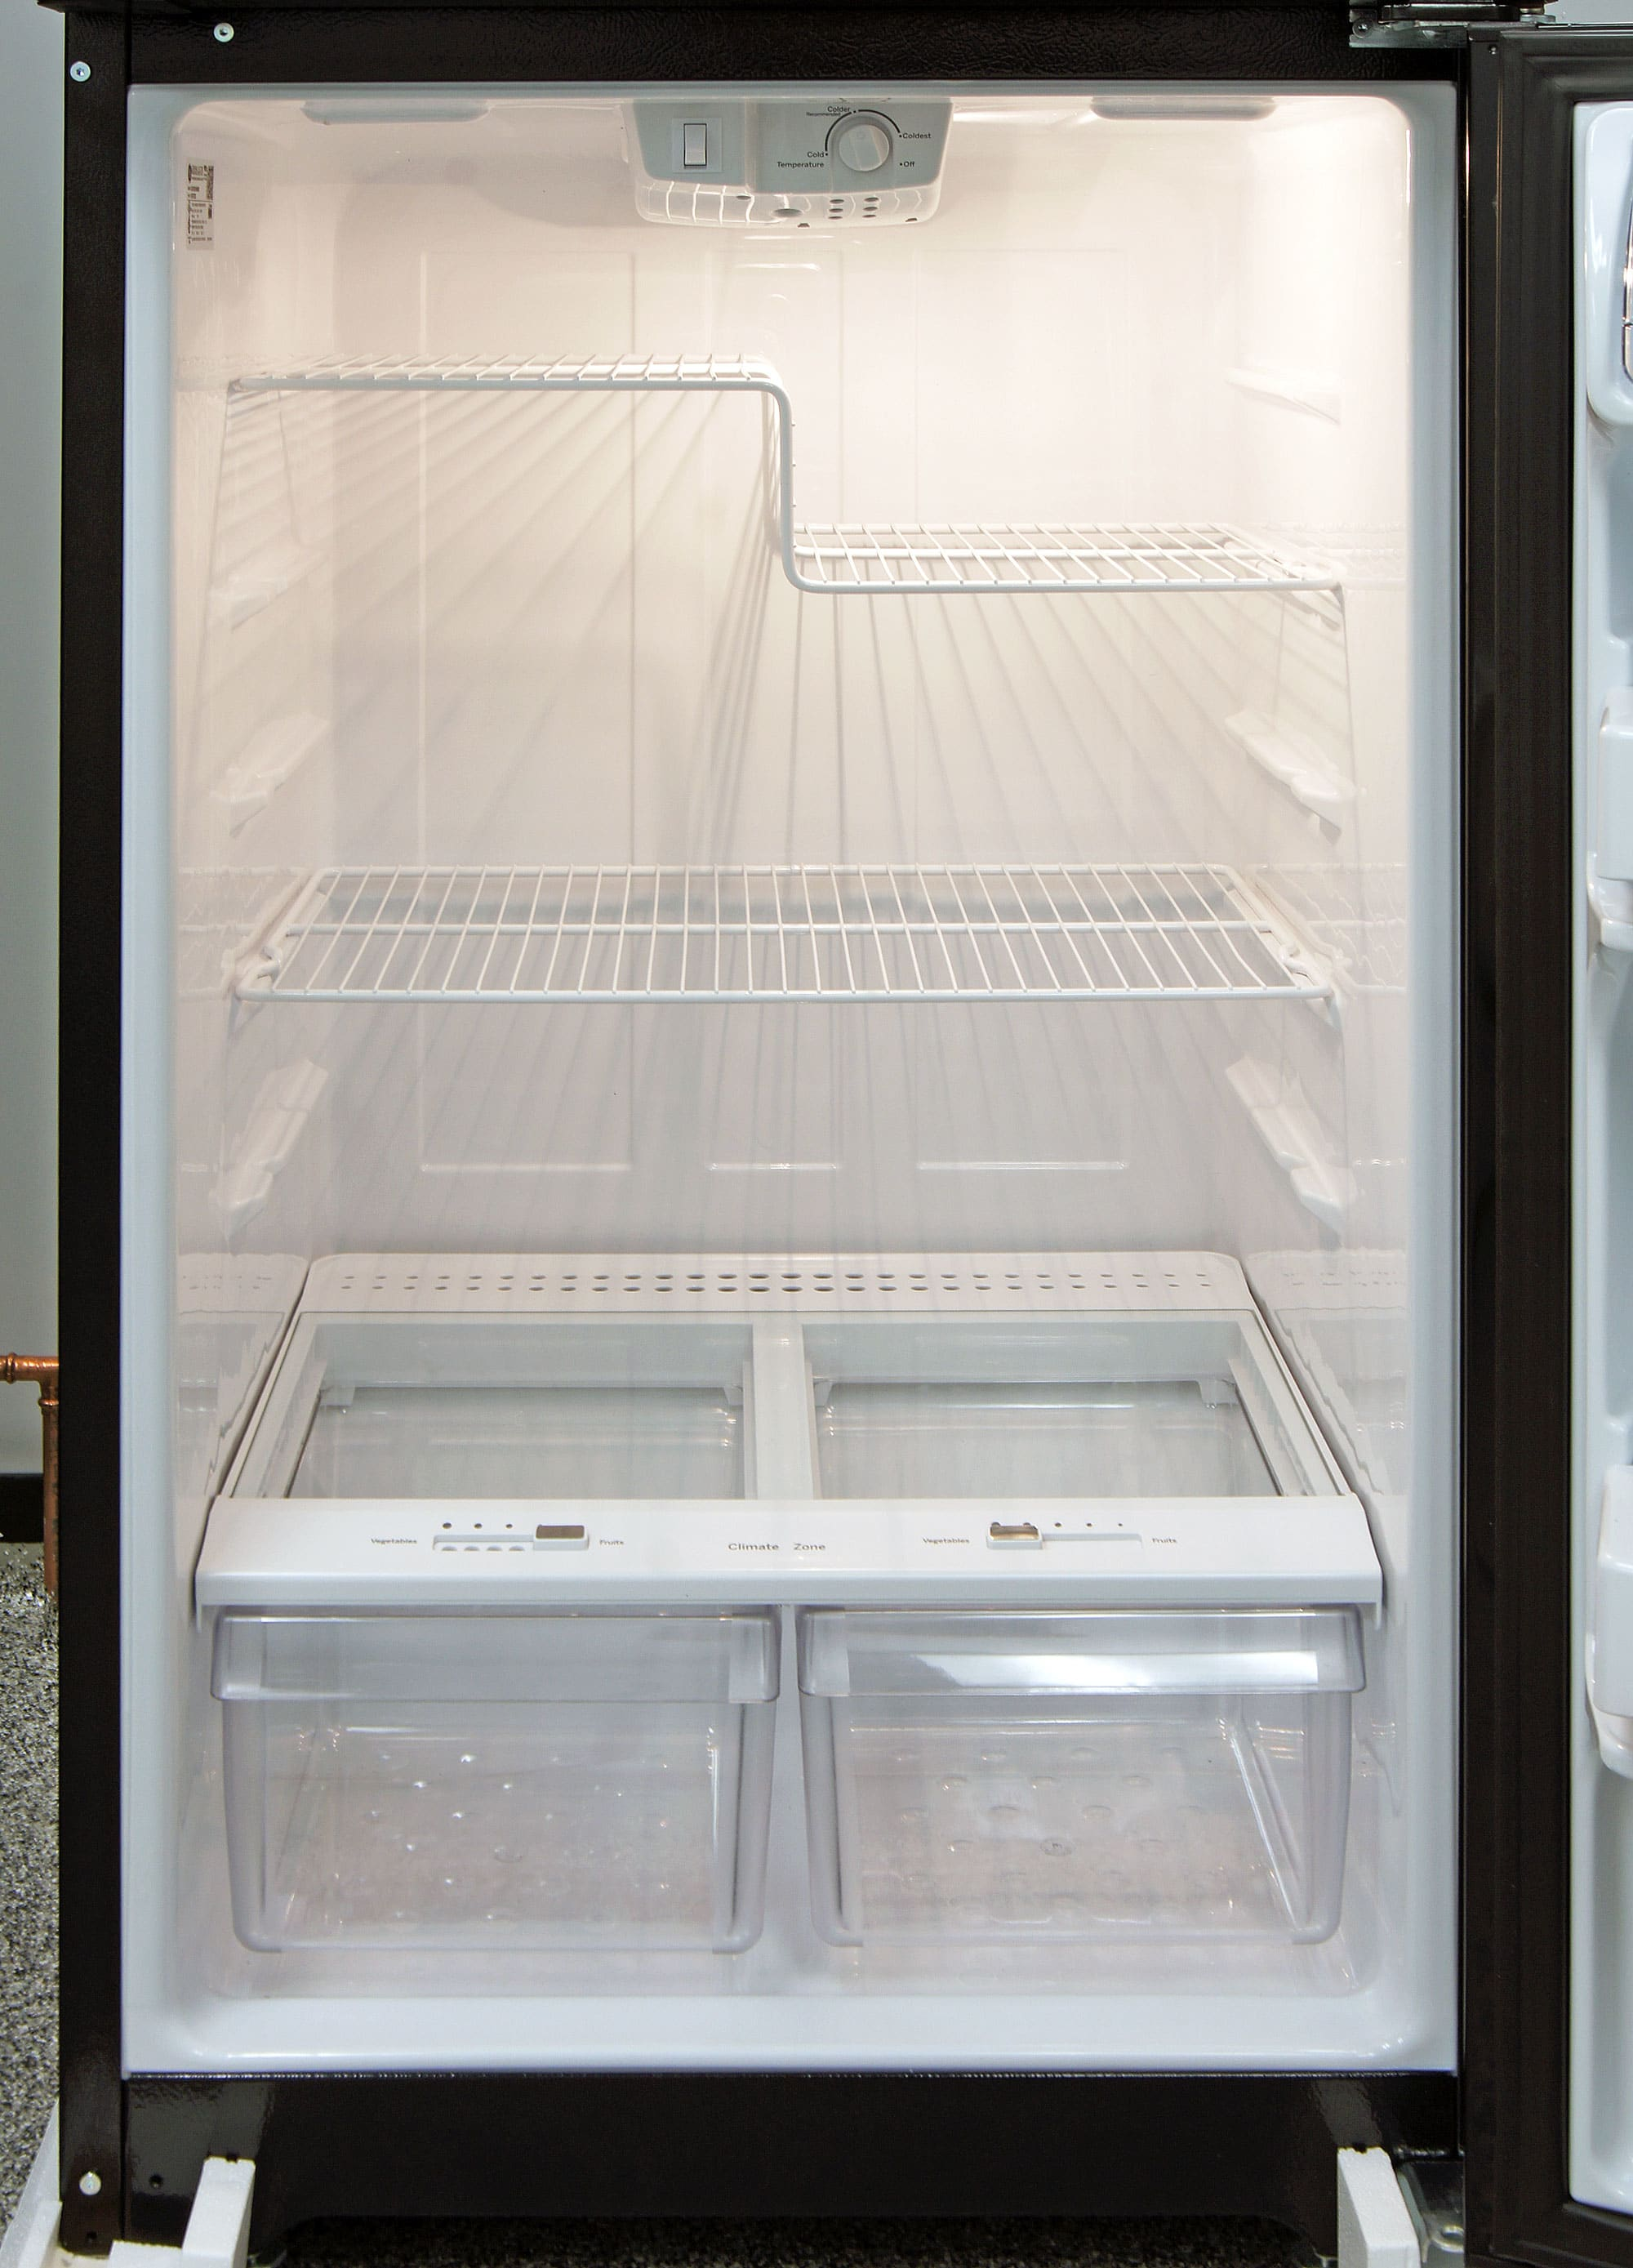 The GE GIE16DGHBB's fridge interior uses a two-tier shelf to accommodate items of varying heights.